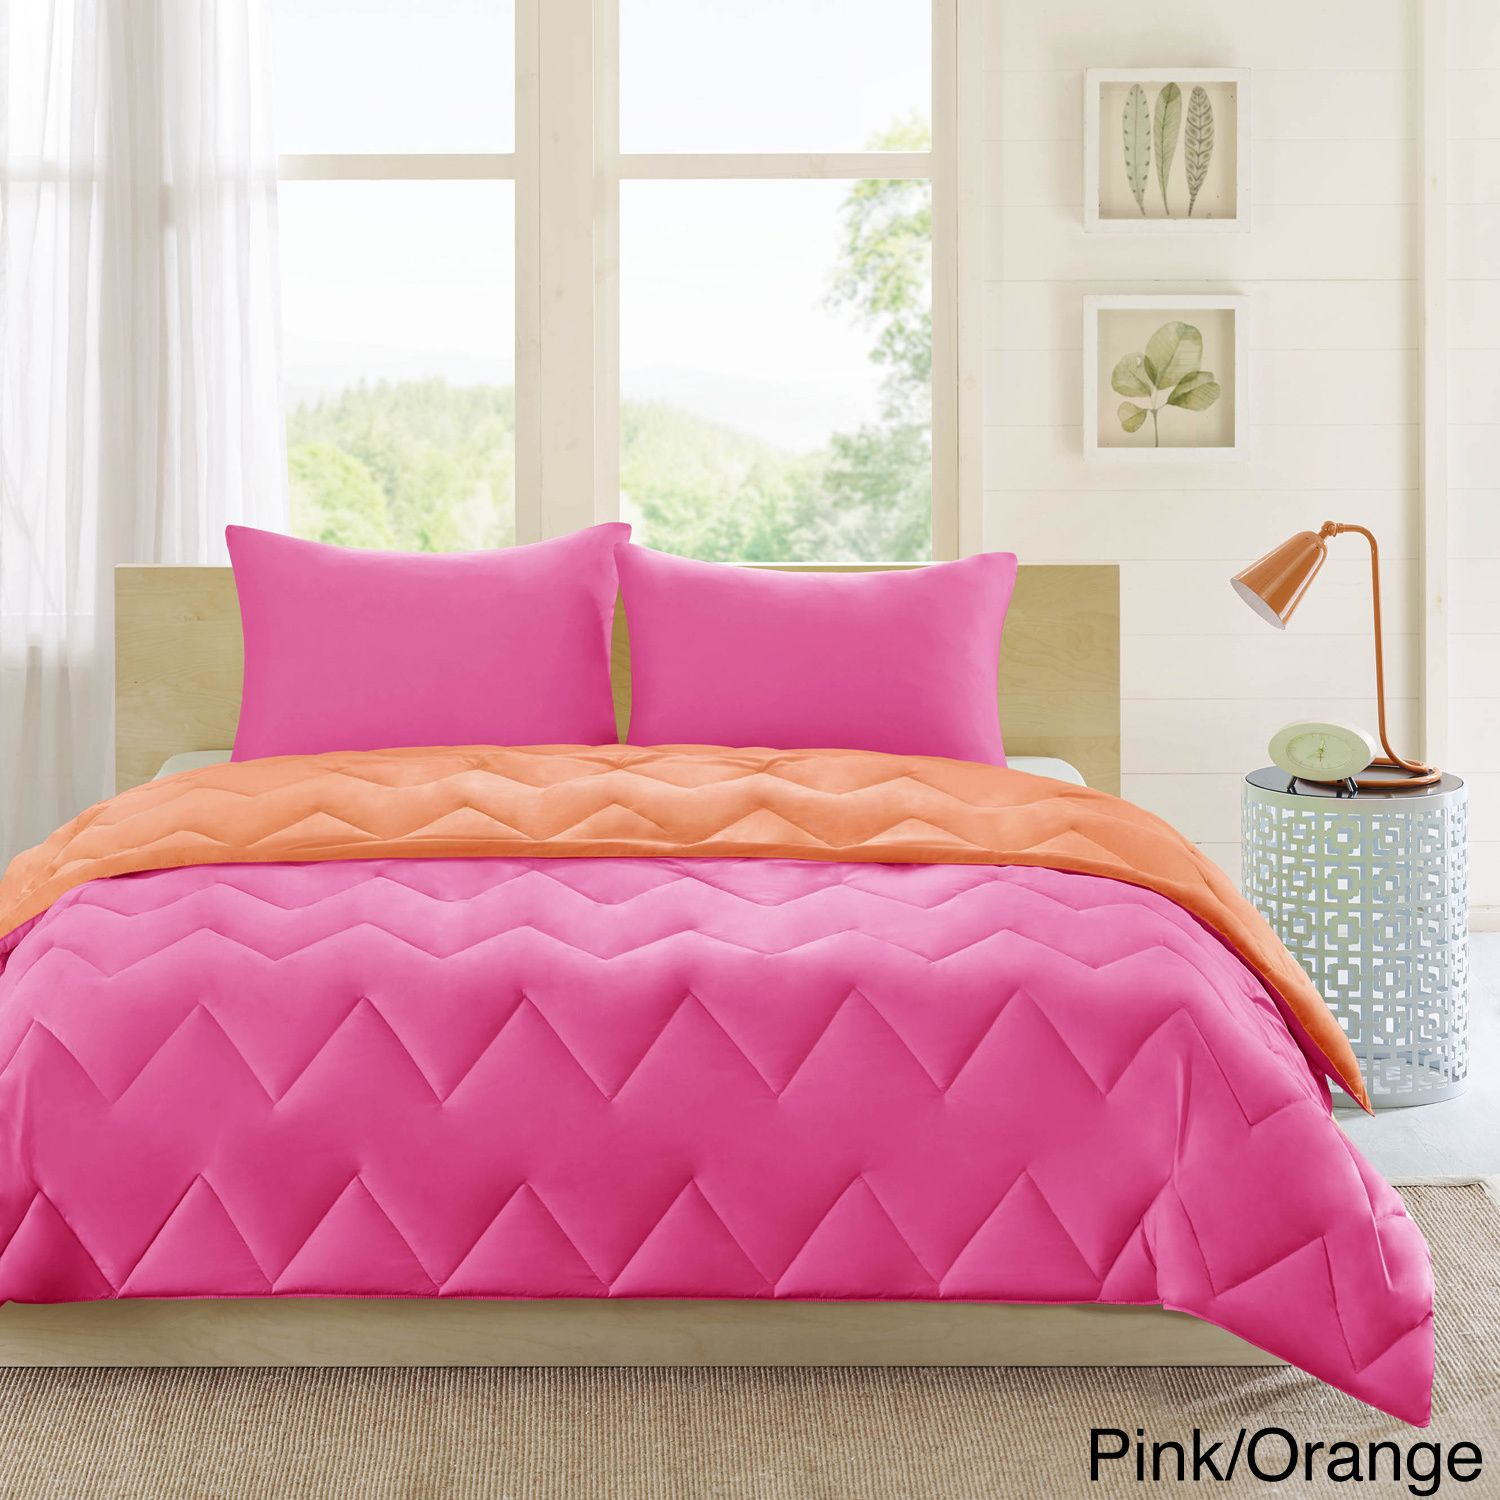 The penny comforter is a fun way to add a pop of color to your